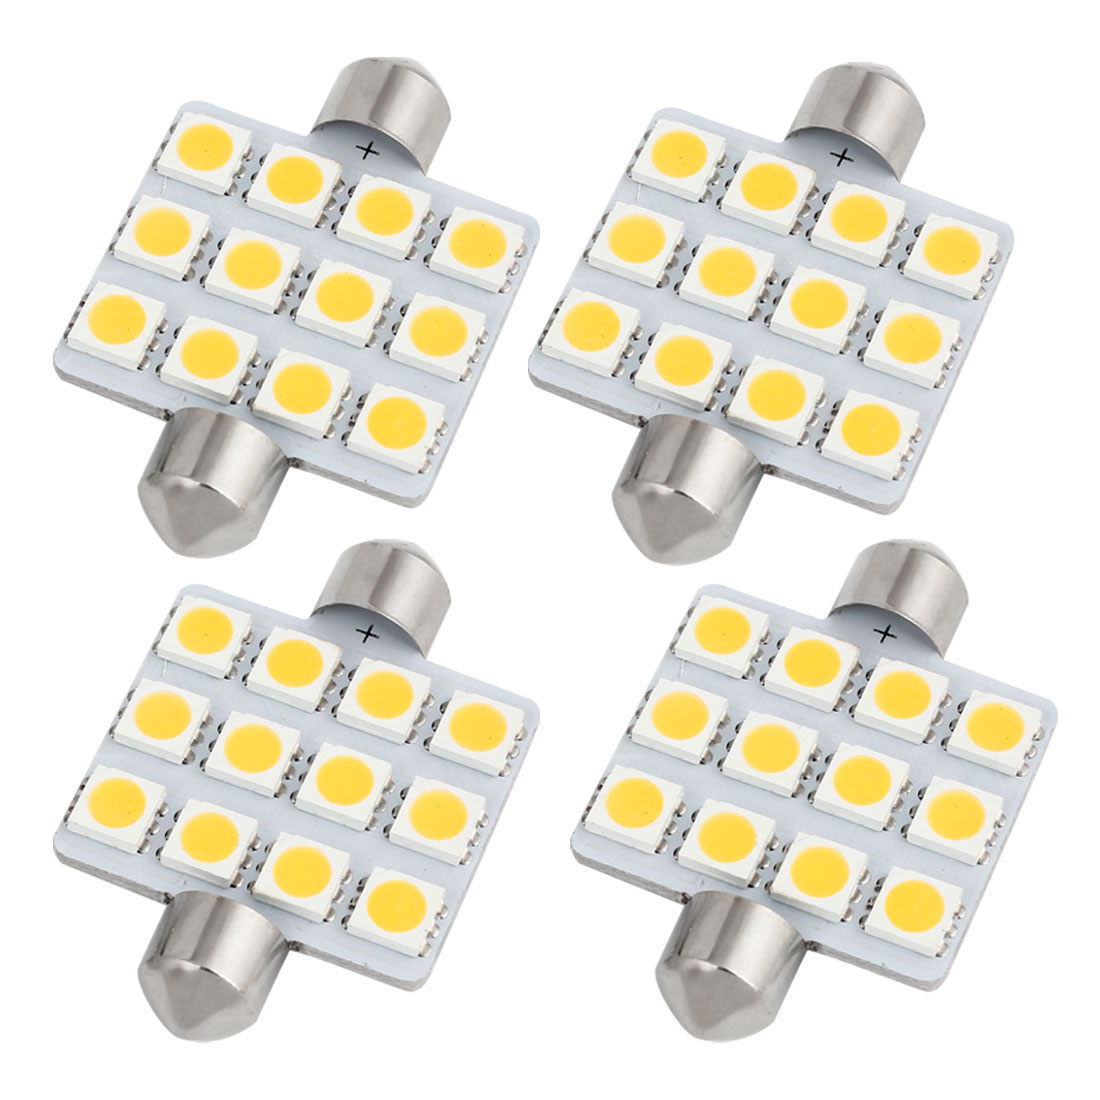 4pcs 41mm 5050 SMD 12-LED Festoon Dome Light Warm White 211 214-2 578 Internal